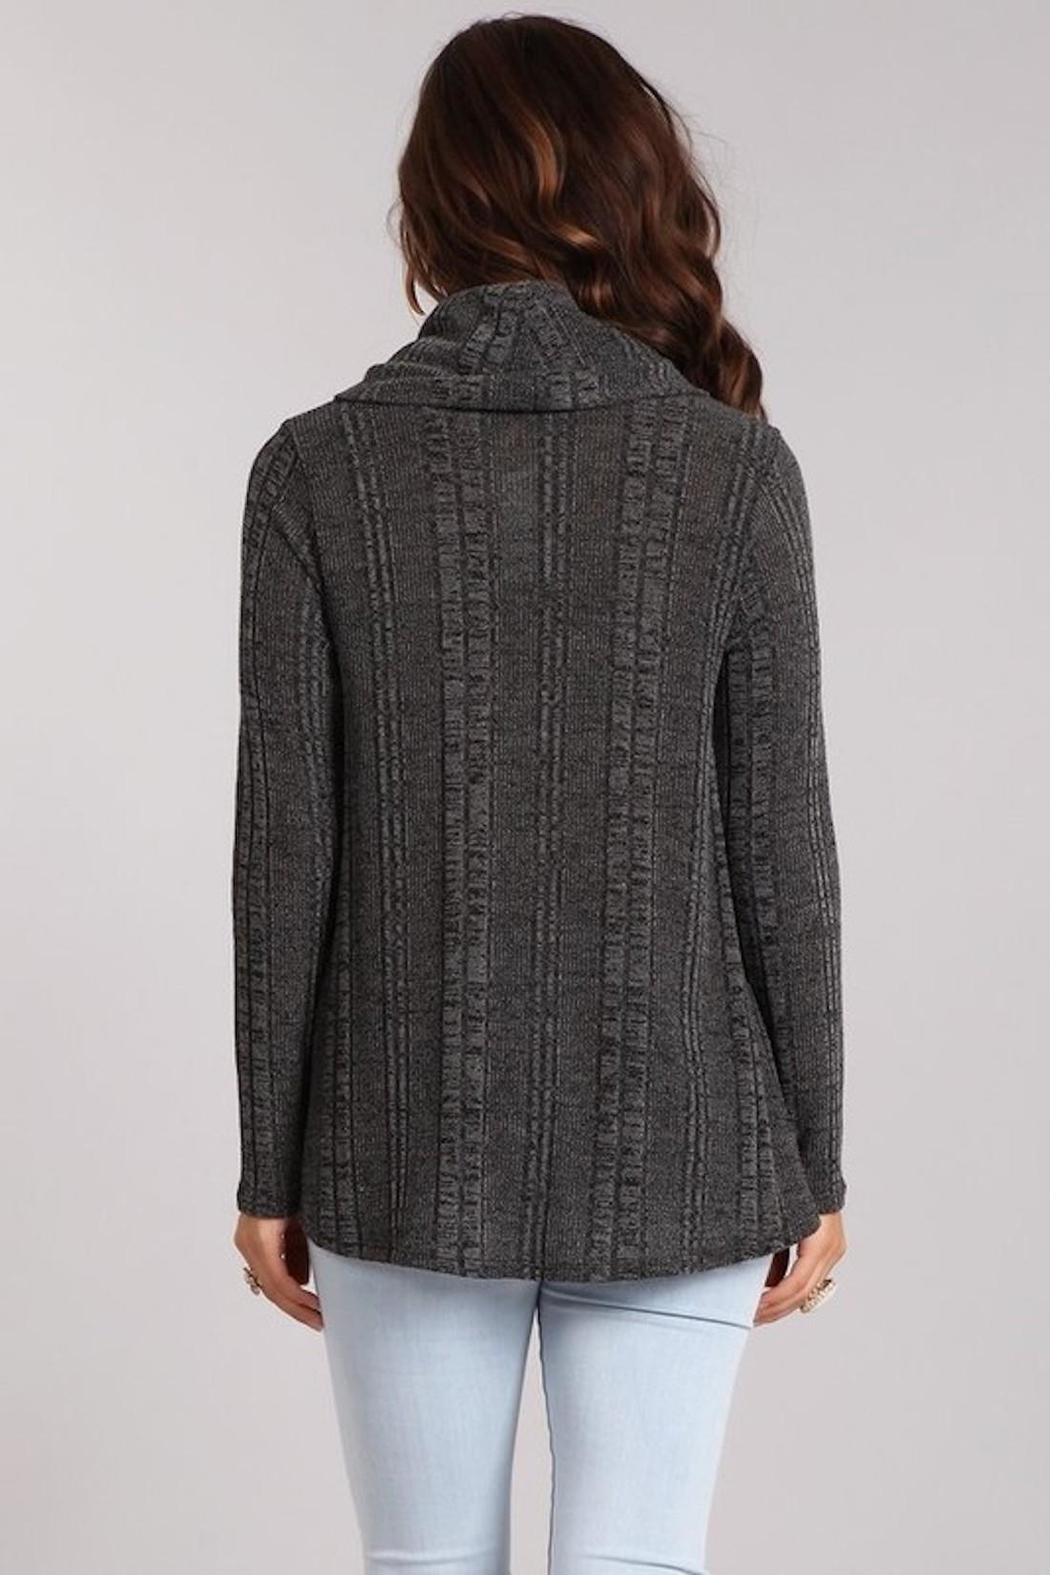 Chris & Carol Charcoal Cowl-Neck Sweater - Side Cropped Image